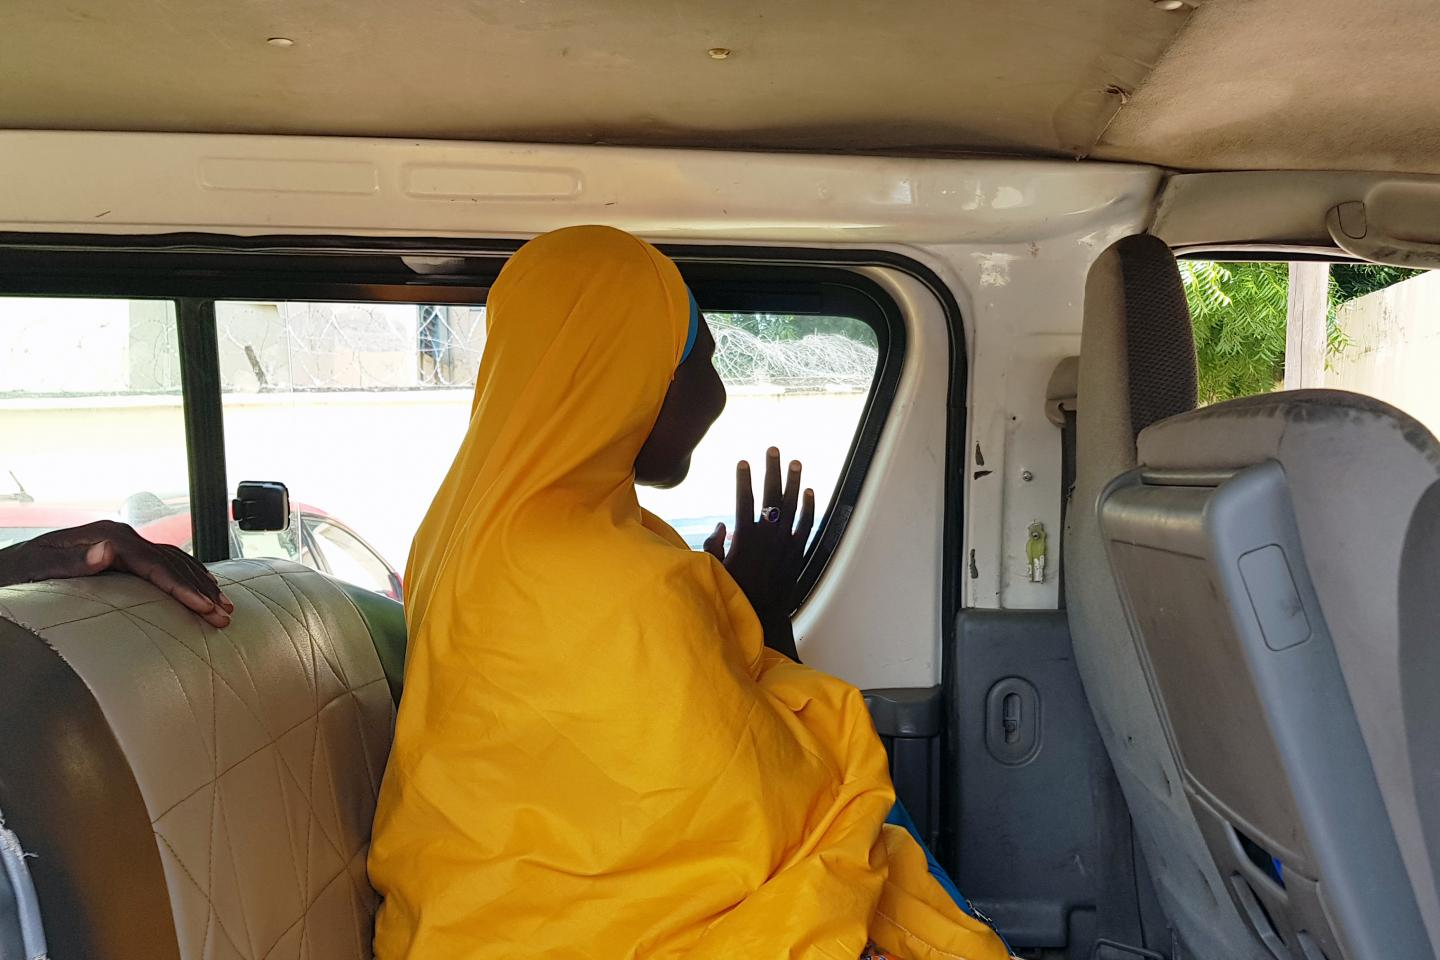 A girl waves out a van window, Nigeria